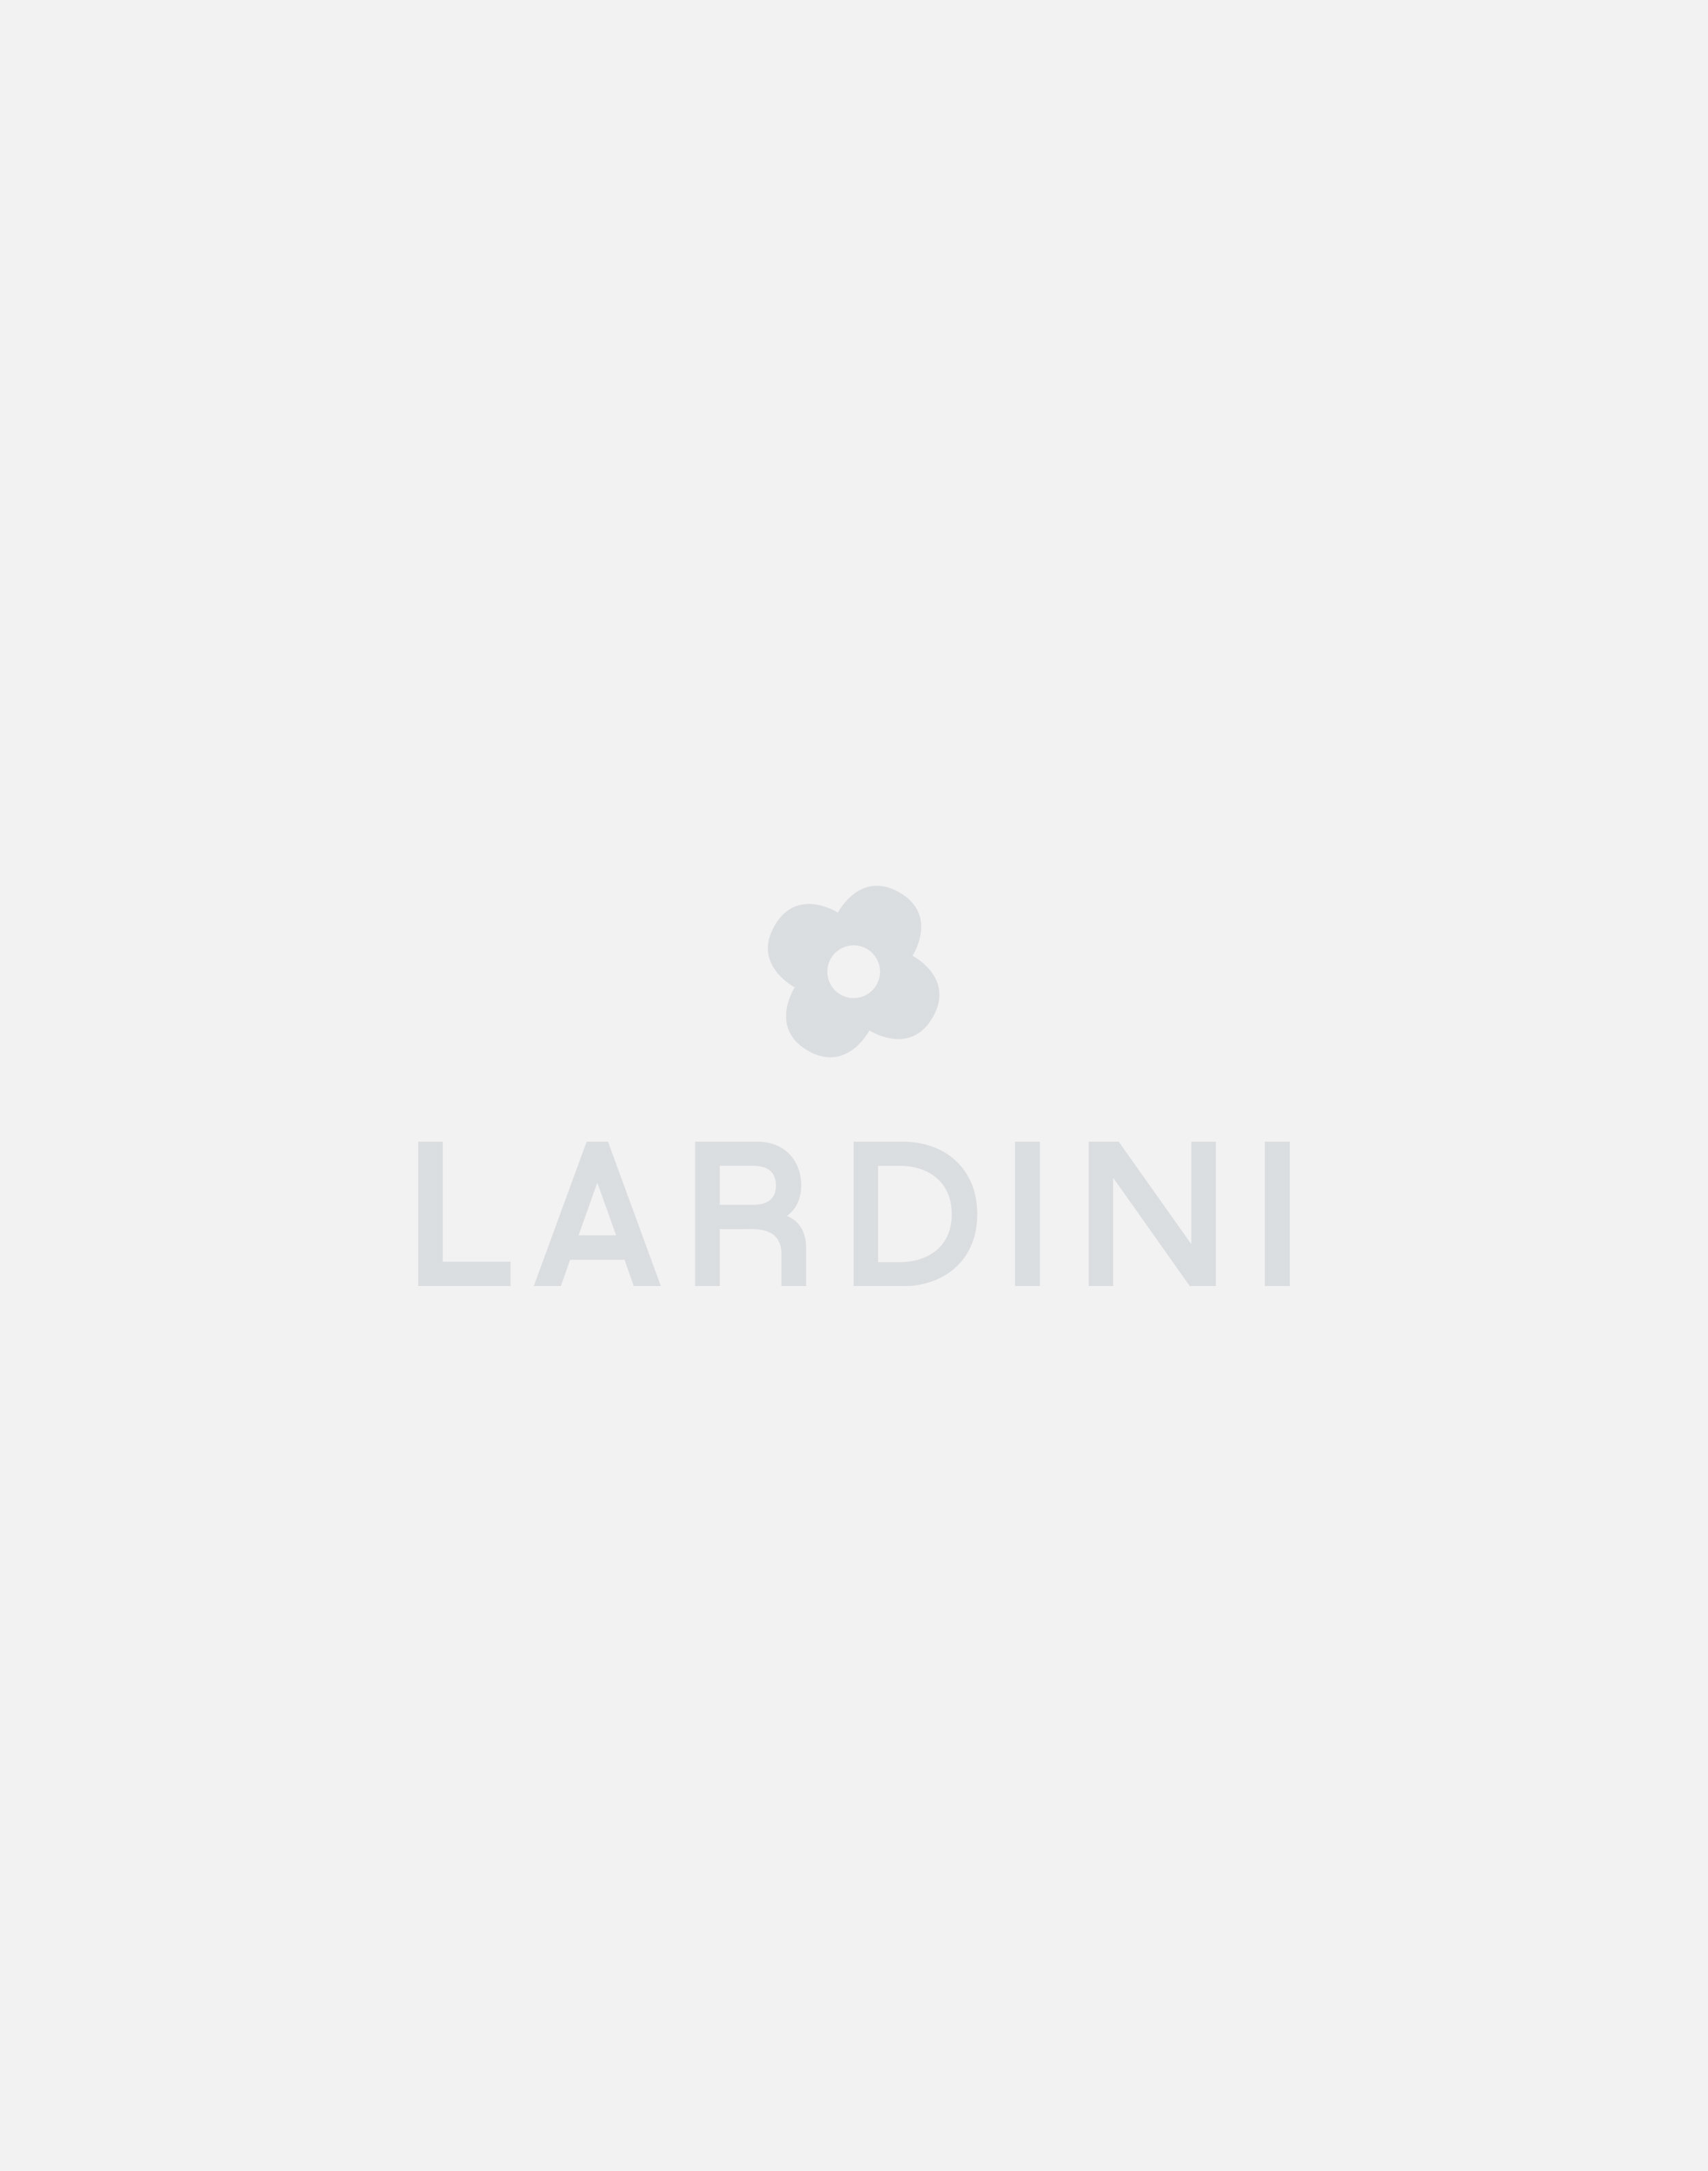 Green tricot knit pocket square